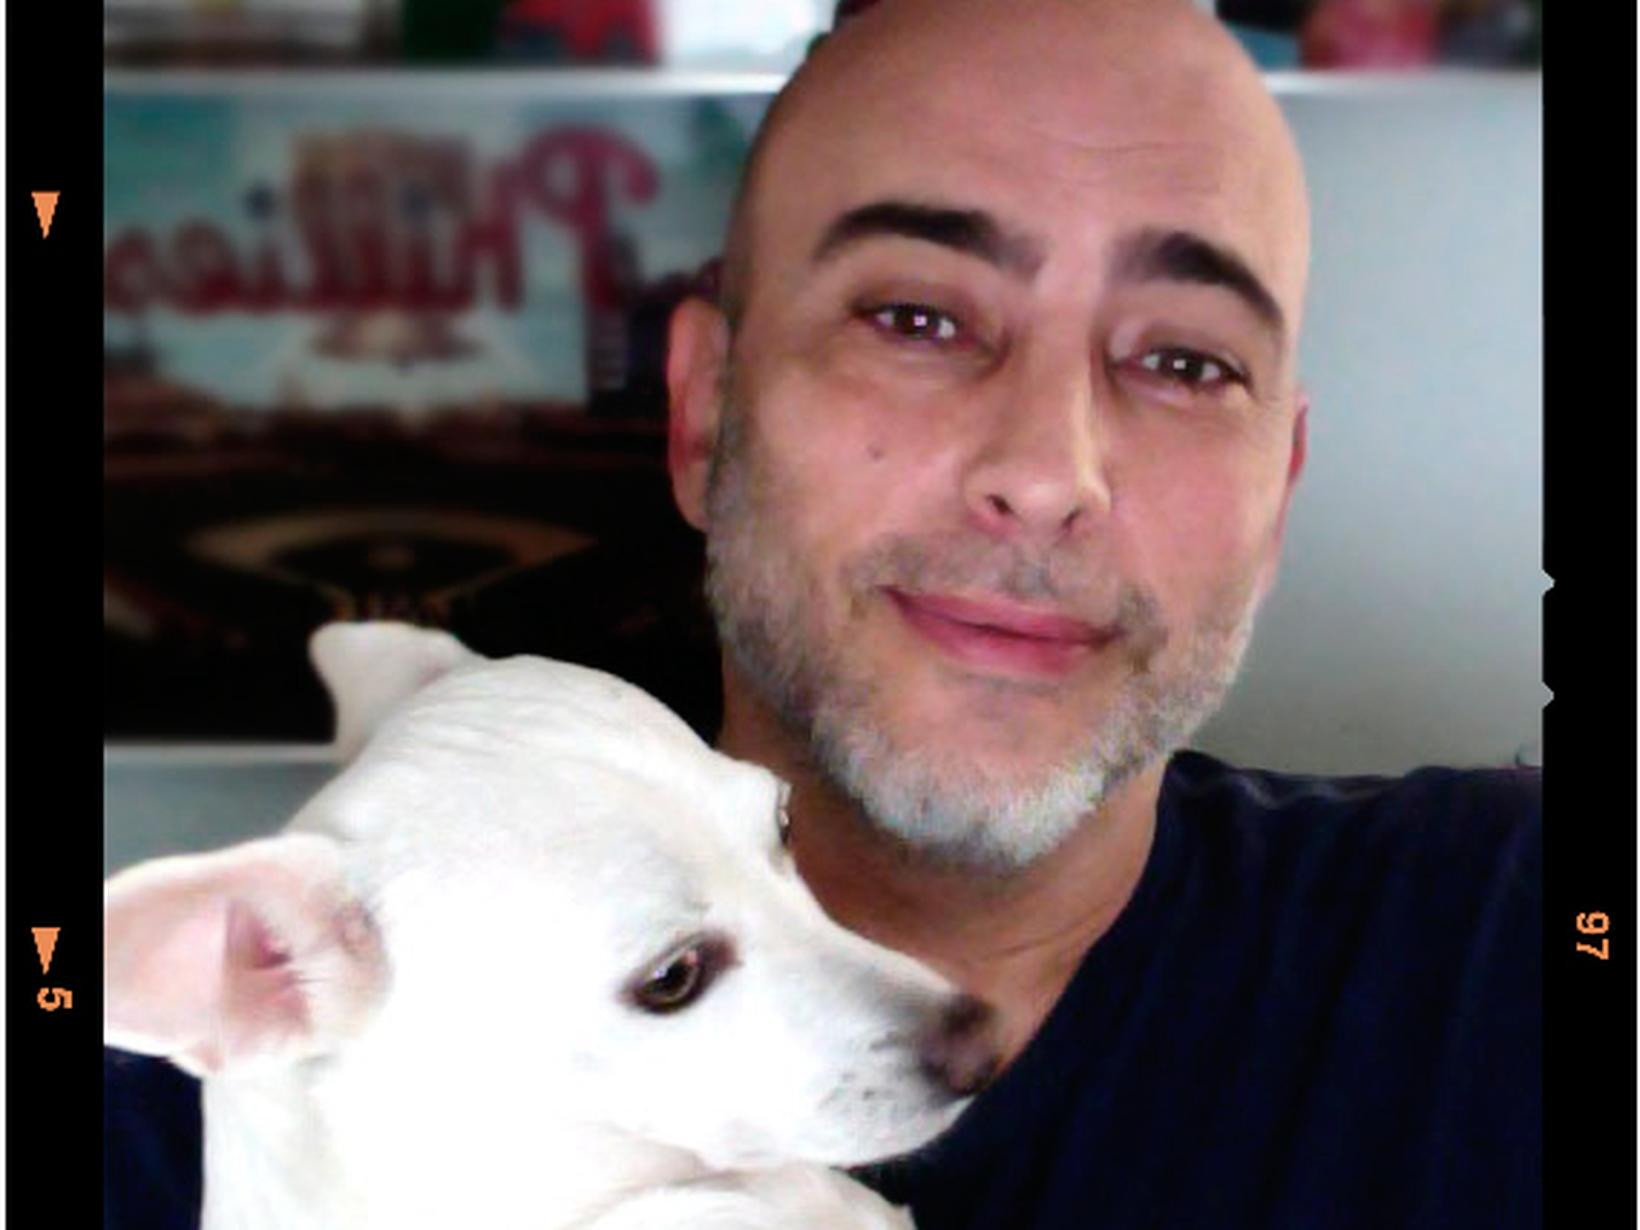 Laurent from Los Angeles, California, United States